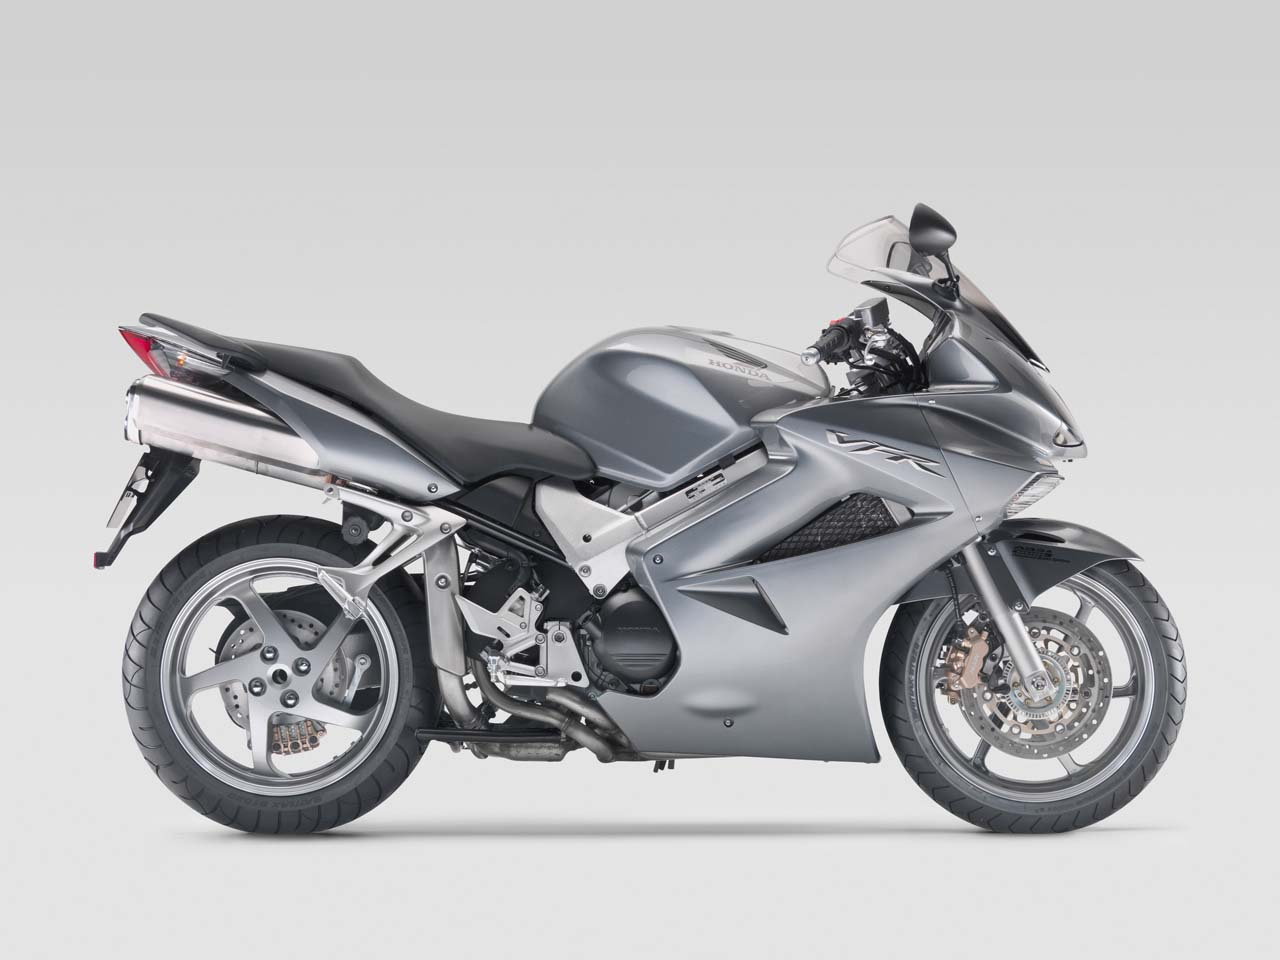 2008 honda vfr 800 abs pics specs and information. Black Bedroom Furniture Sets. Home Design Ideas